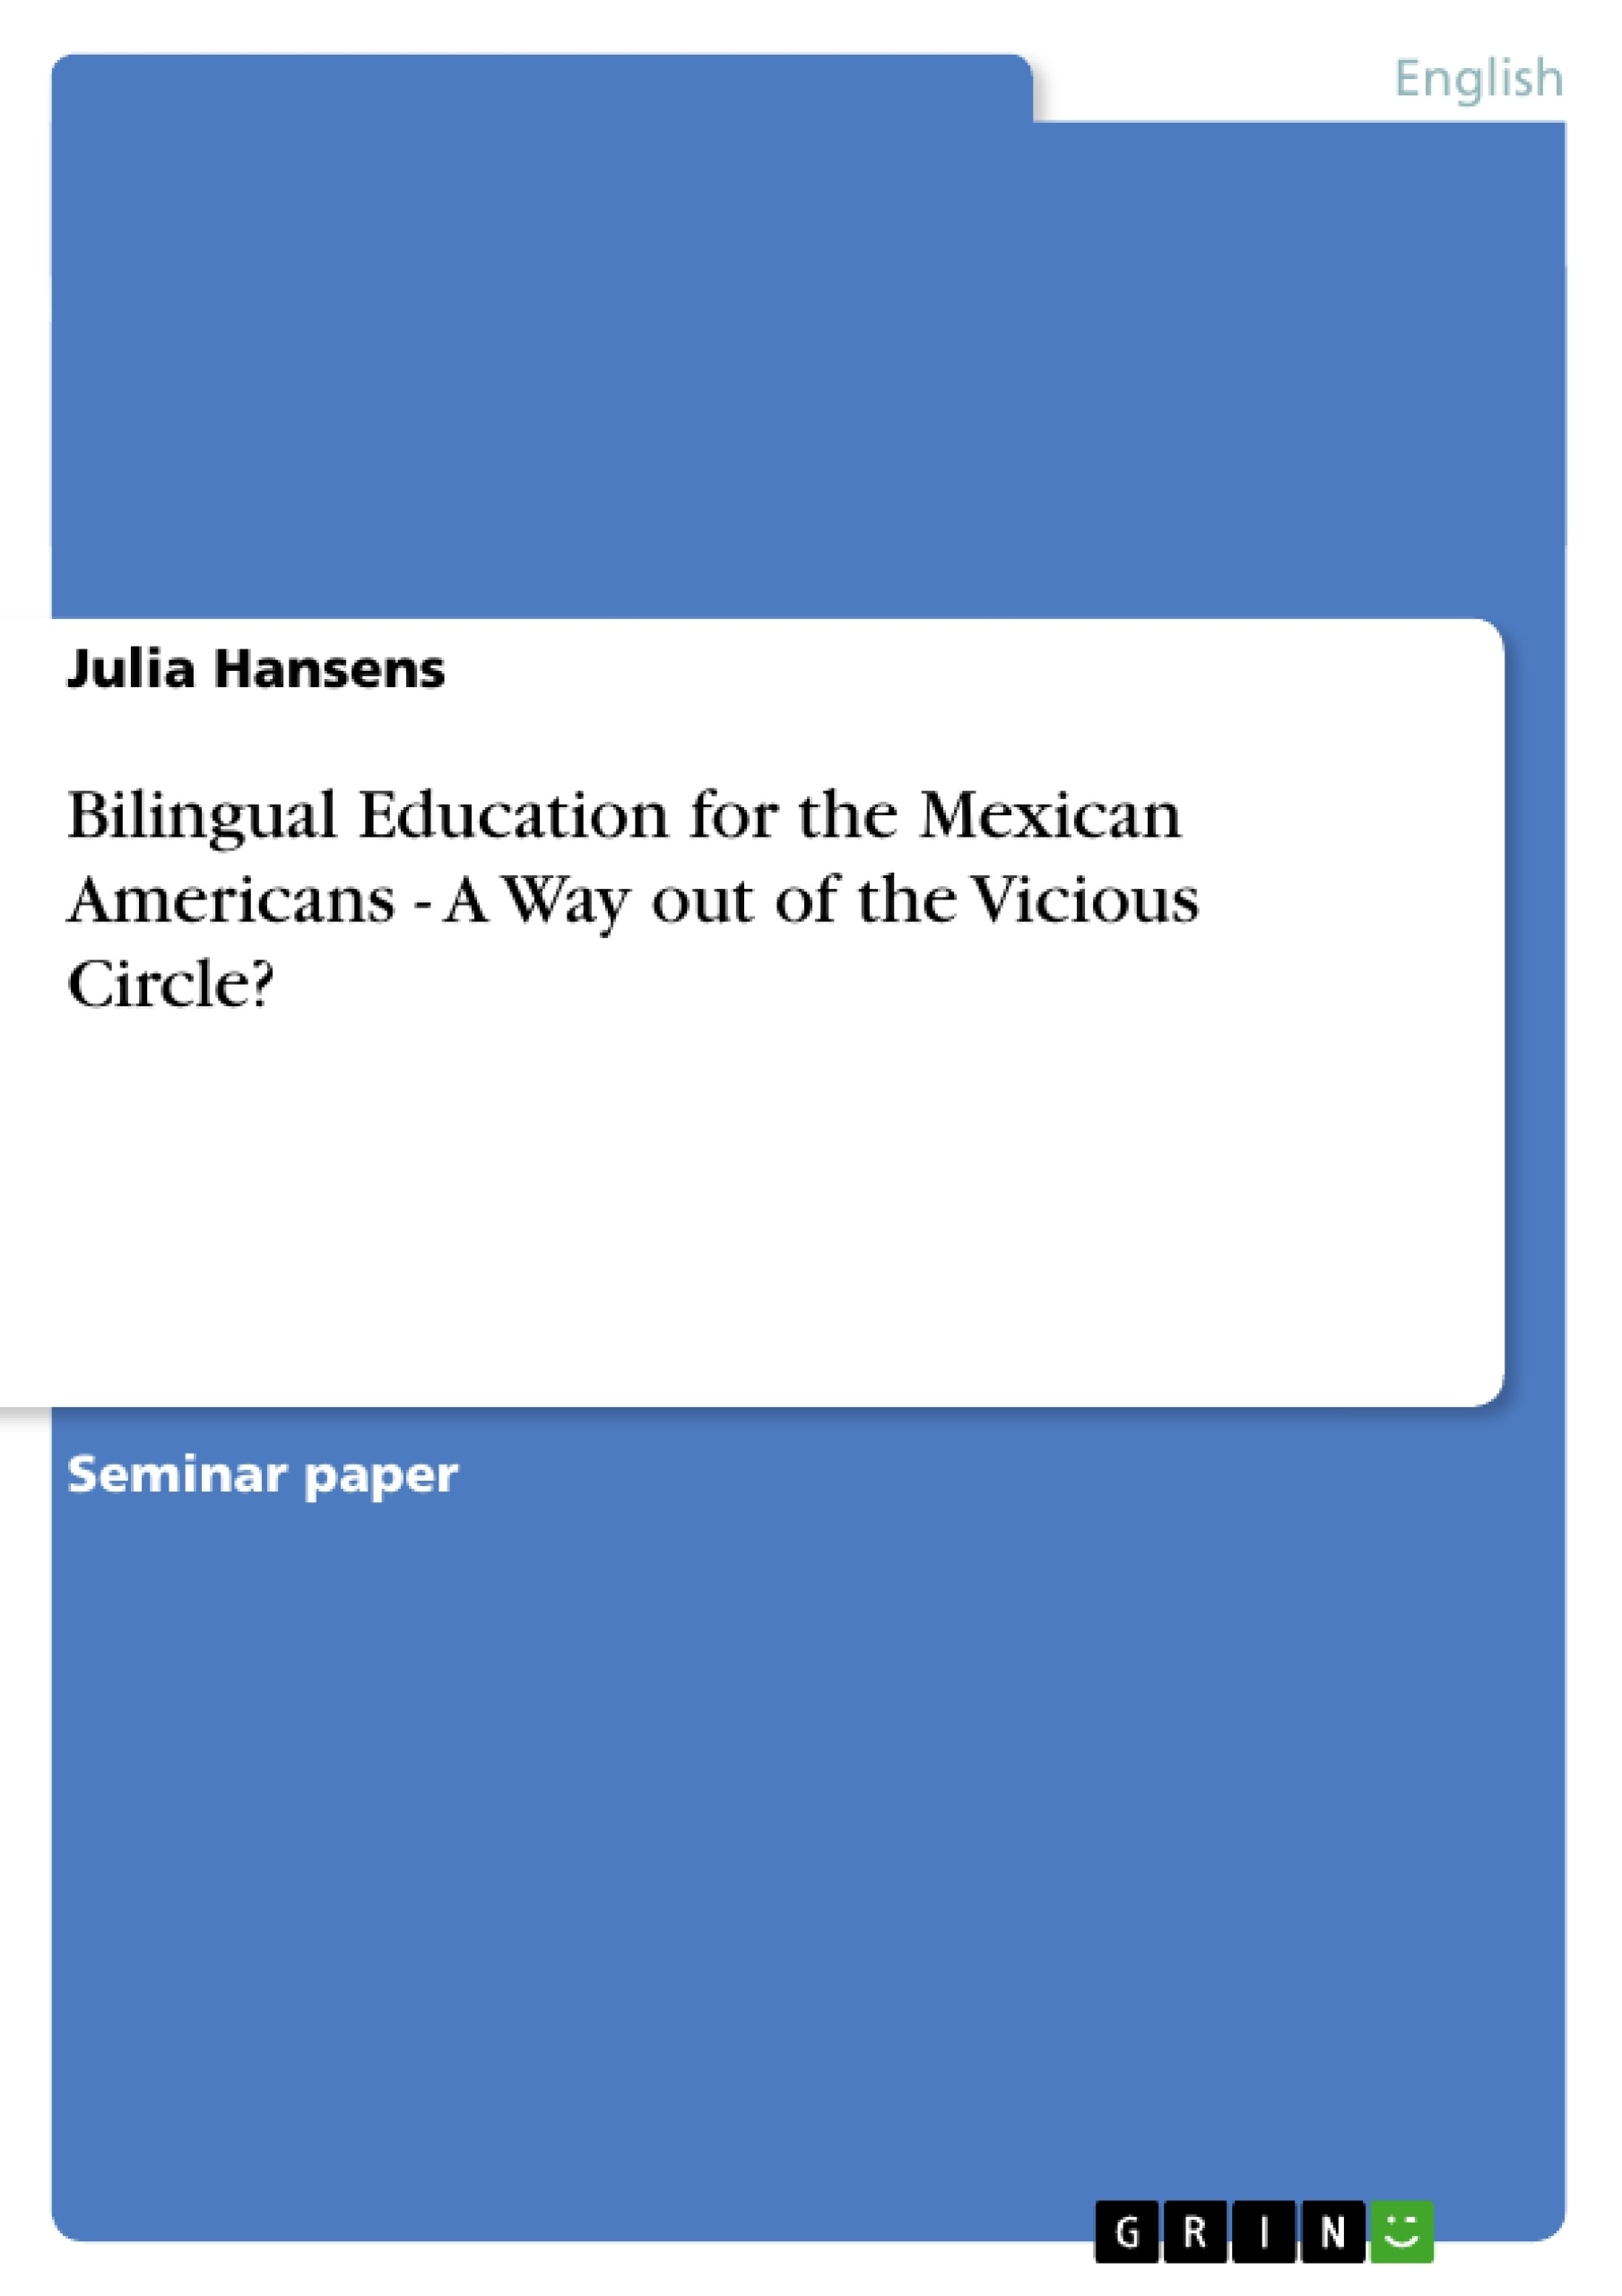 Title: Bilingual Education for the Mexican Americans - A Way out of the Vicious Circle?